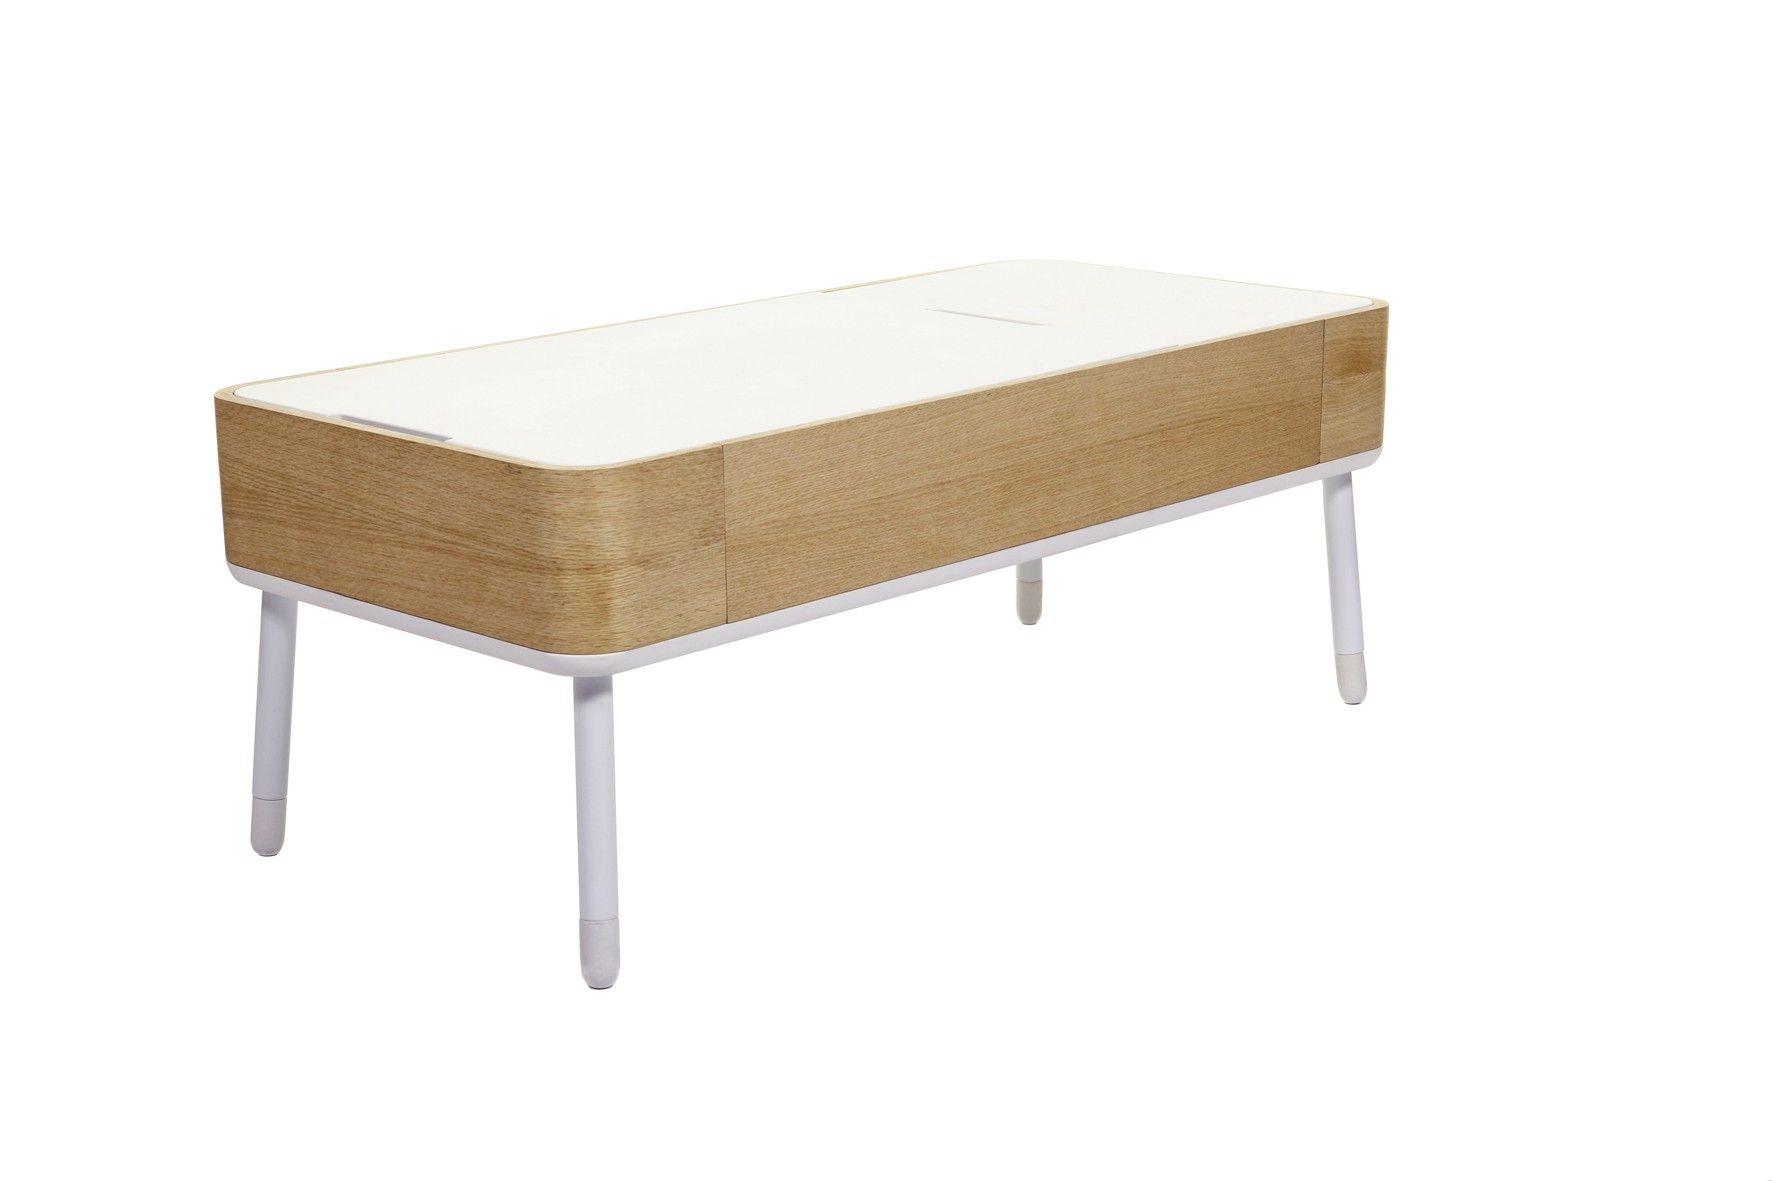 Soft Coffee Table With Storage The Soft Curves Of The Modern Looking Pad Coffee Table